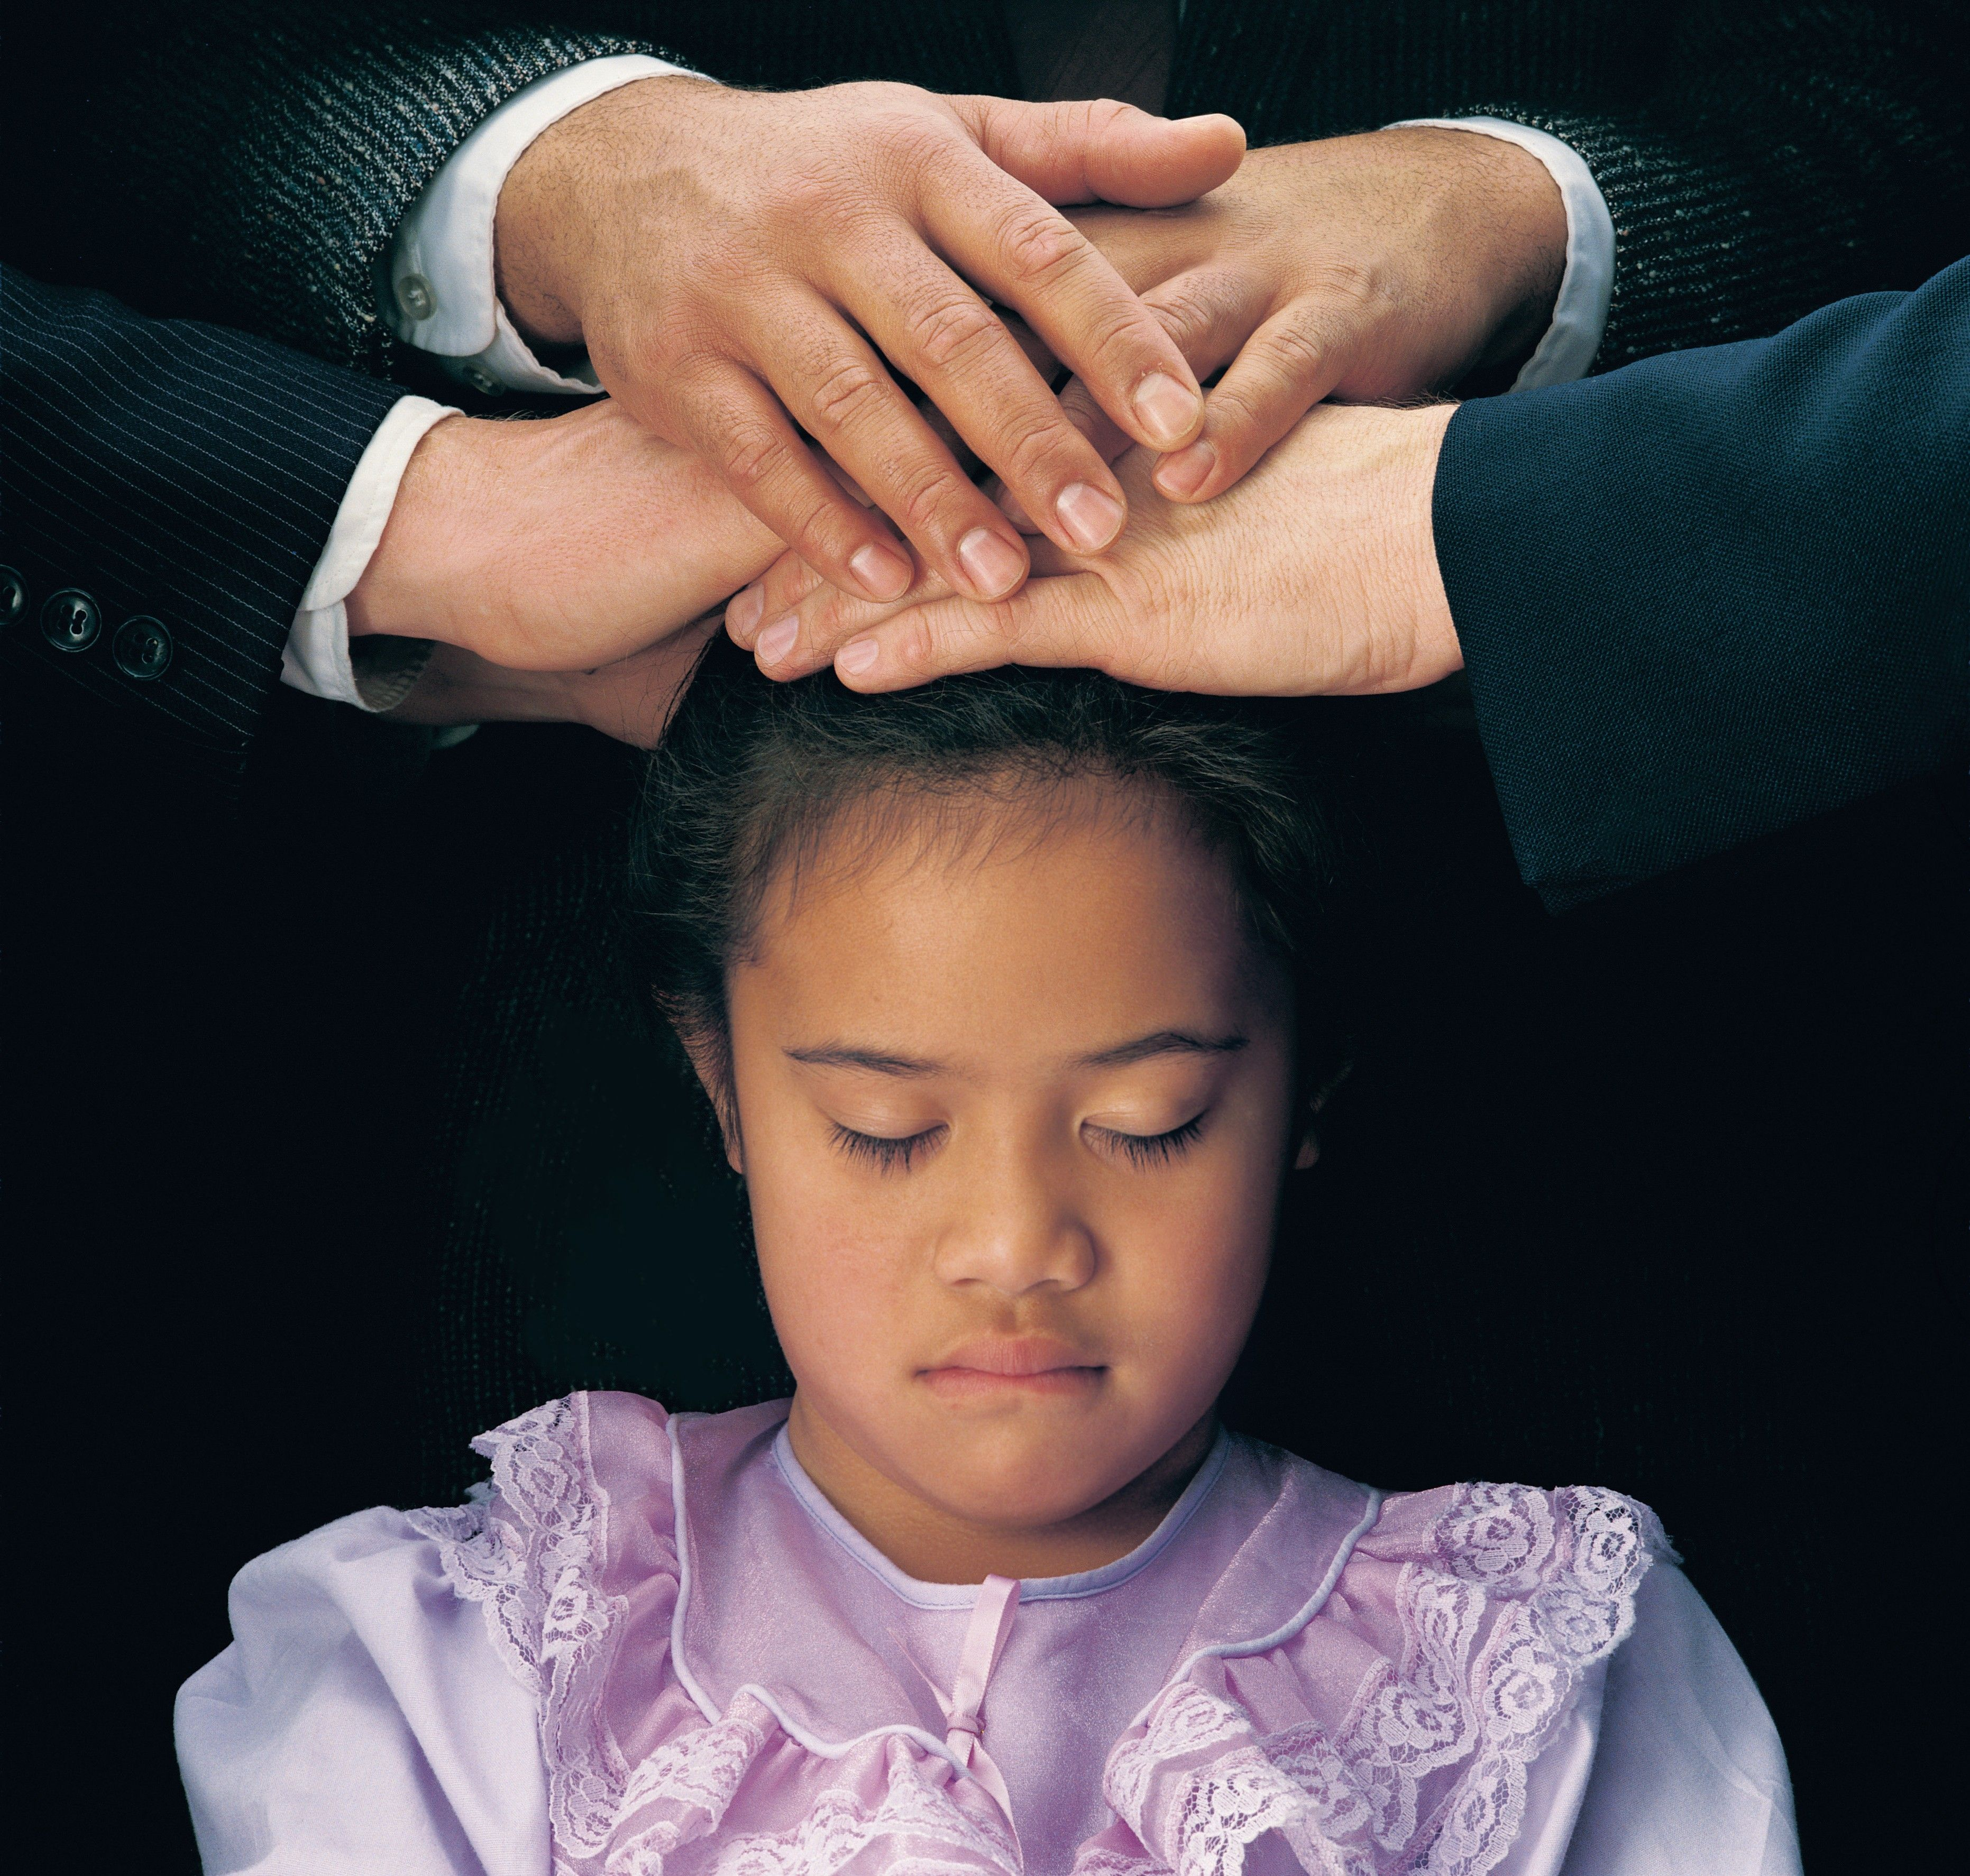 The Gift of the Holy Ghost; GAK 602; Primary manual 2-30; Primary manual 3-14; Acts 2:38; 1 Corinthians 12:3; 2 Nephi 32:5; Doctrine and Covenants 130:22